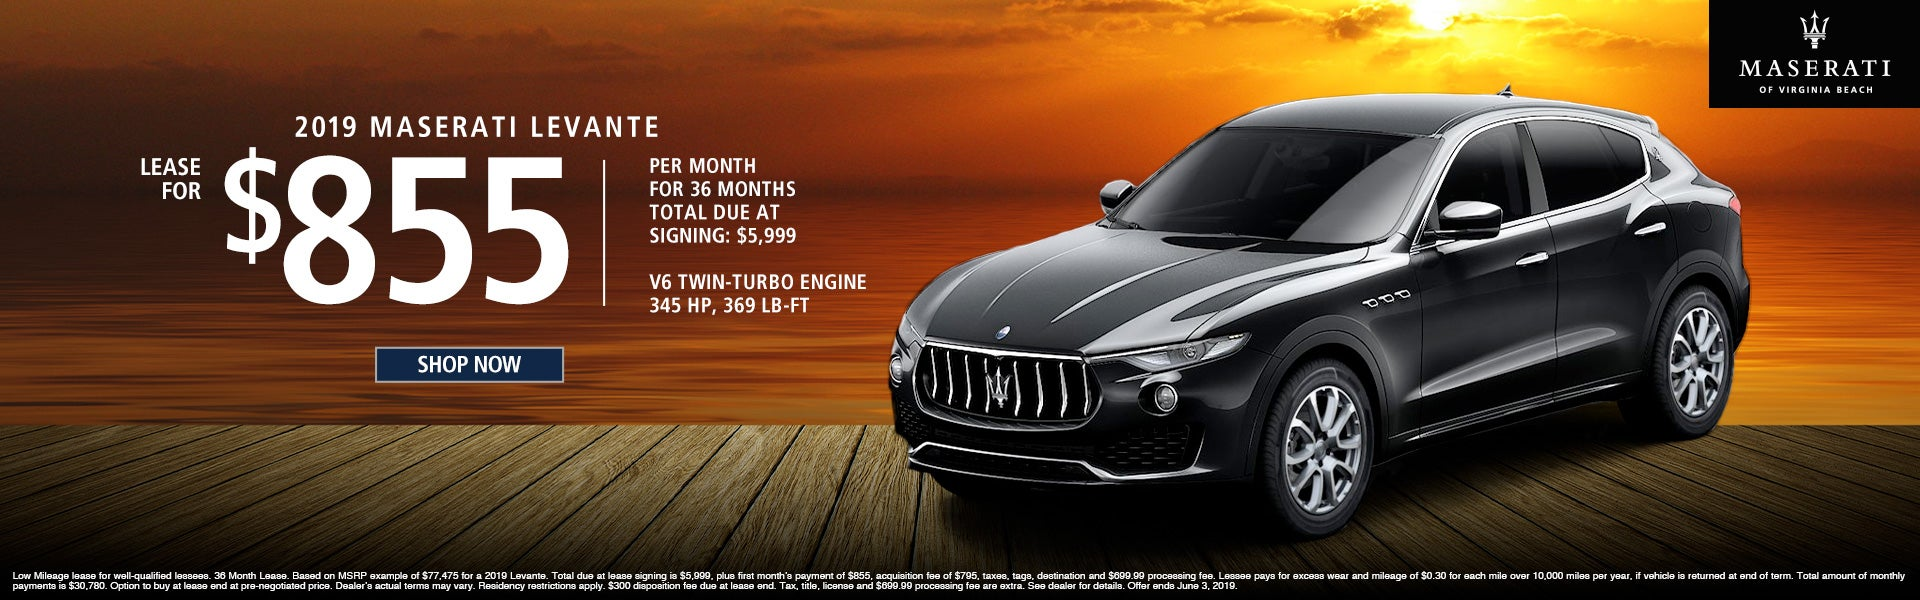 Maserati Dealer In Virginia Beach Va Used Cars Virginia Beach